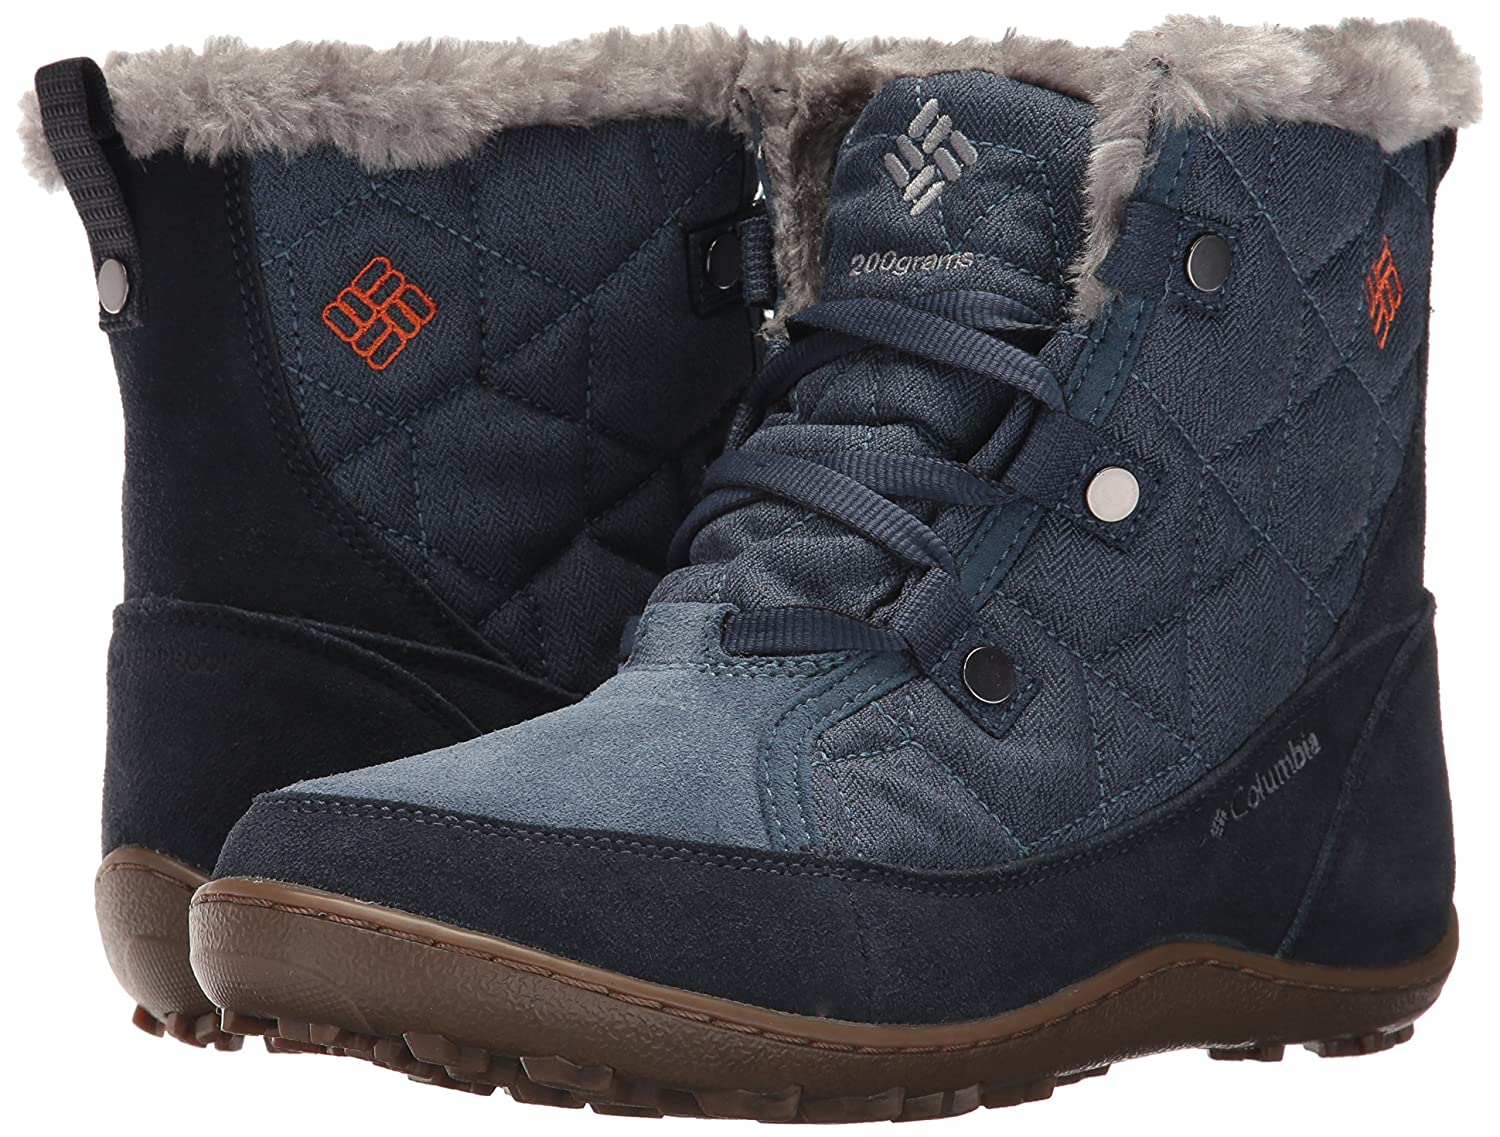 Columbia Omni-Heat Women's Minx Shorty Alta Omni-Heat Columbia Snow Boot B01N6IQKO3 7 B(M) US|Zinc, Desert Sun ed960c